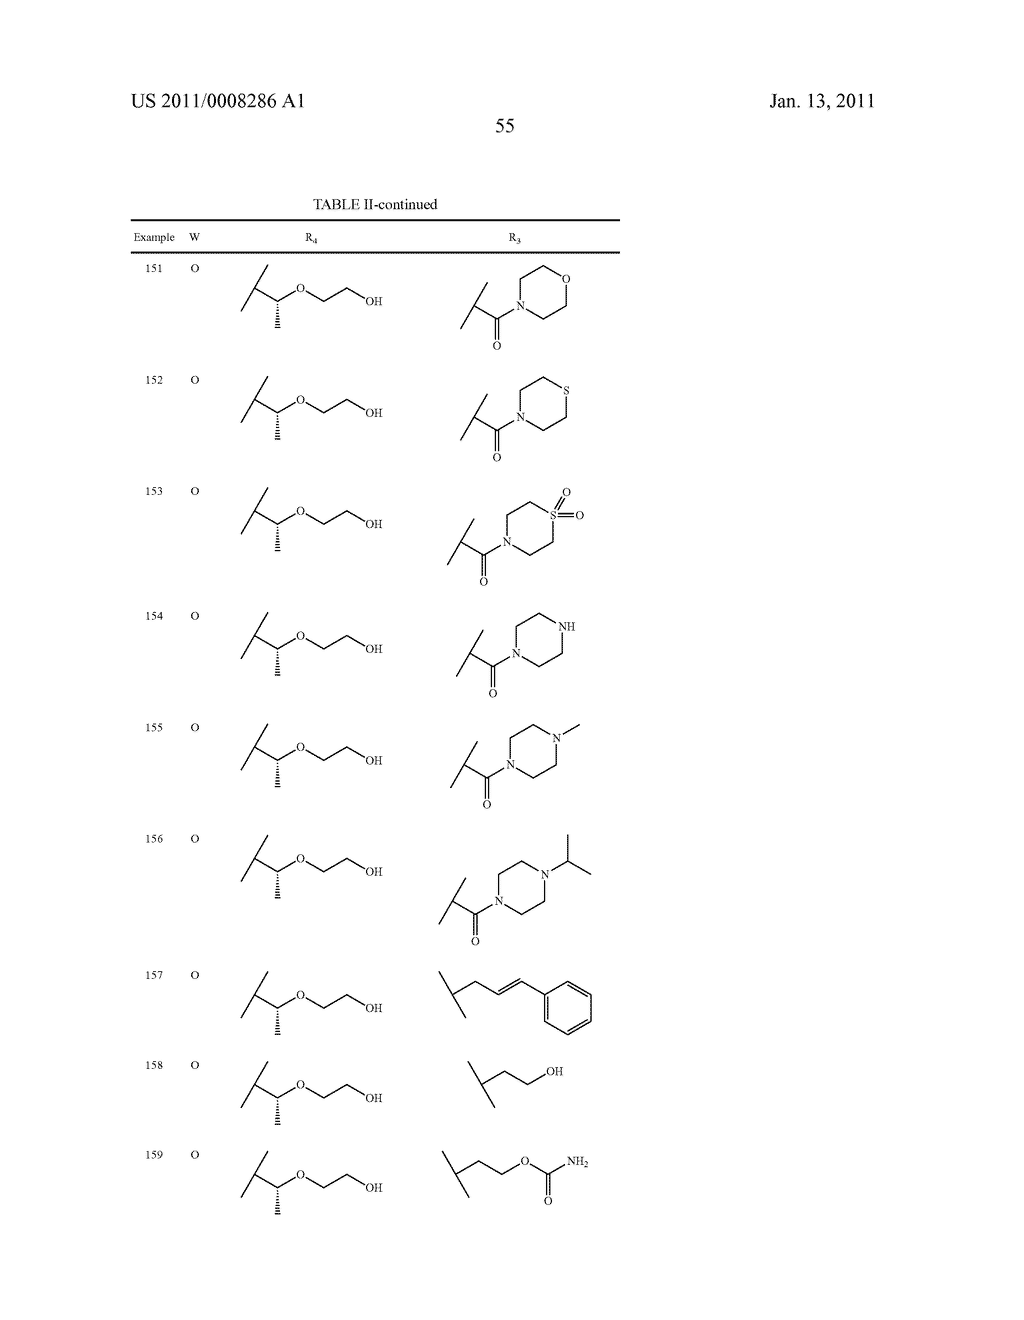 NOVEL PROLINE SUBSTITUTED CYCLOSPORIN ANALOGUES - diagram, schematic, and image 56